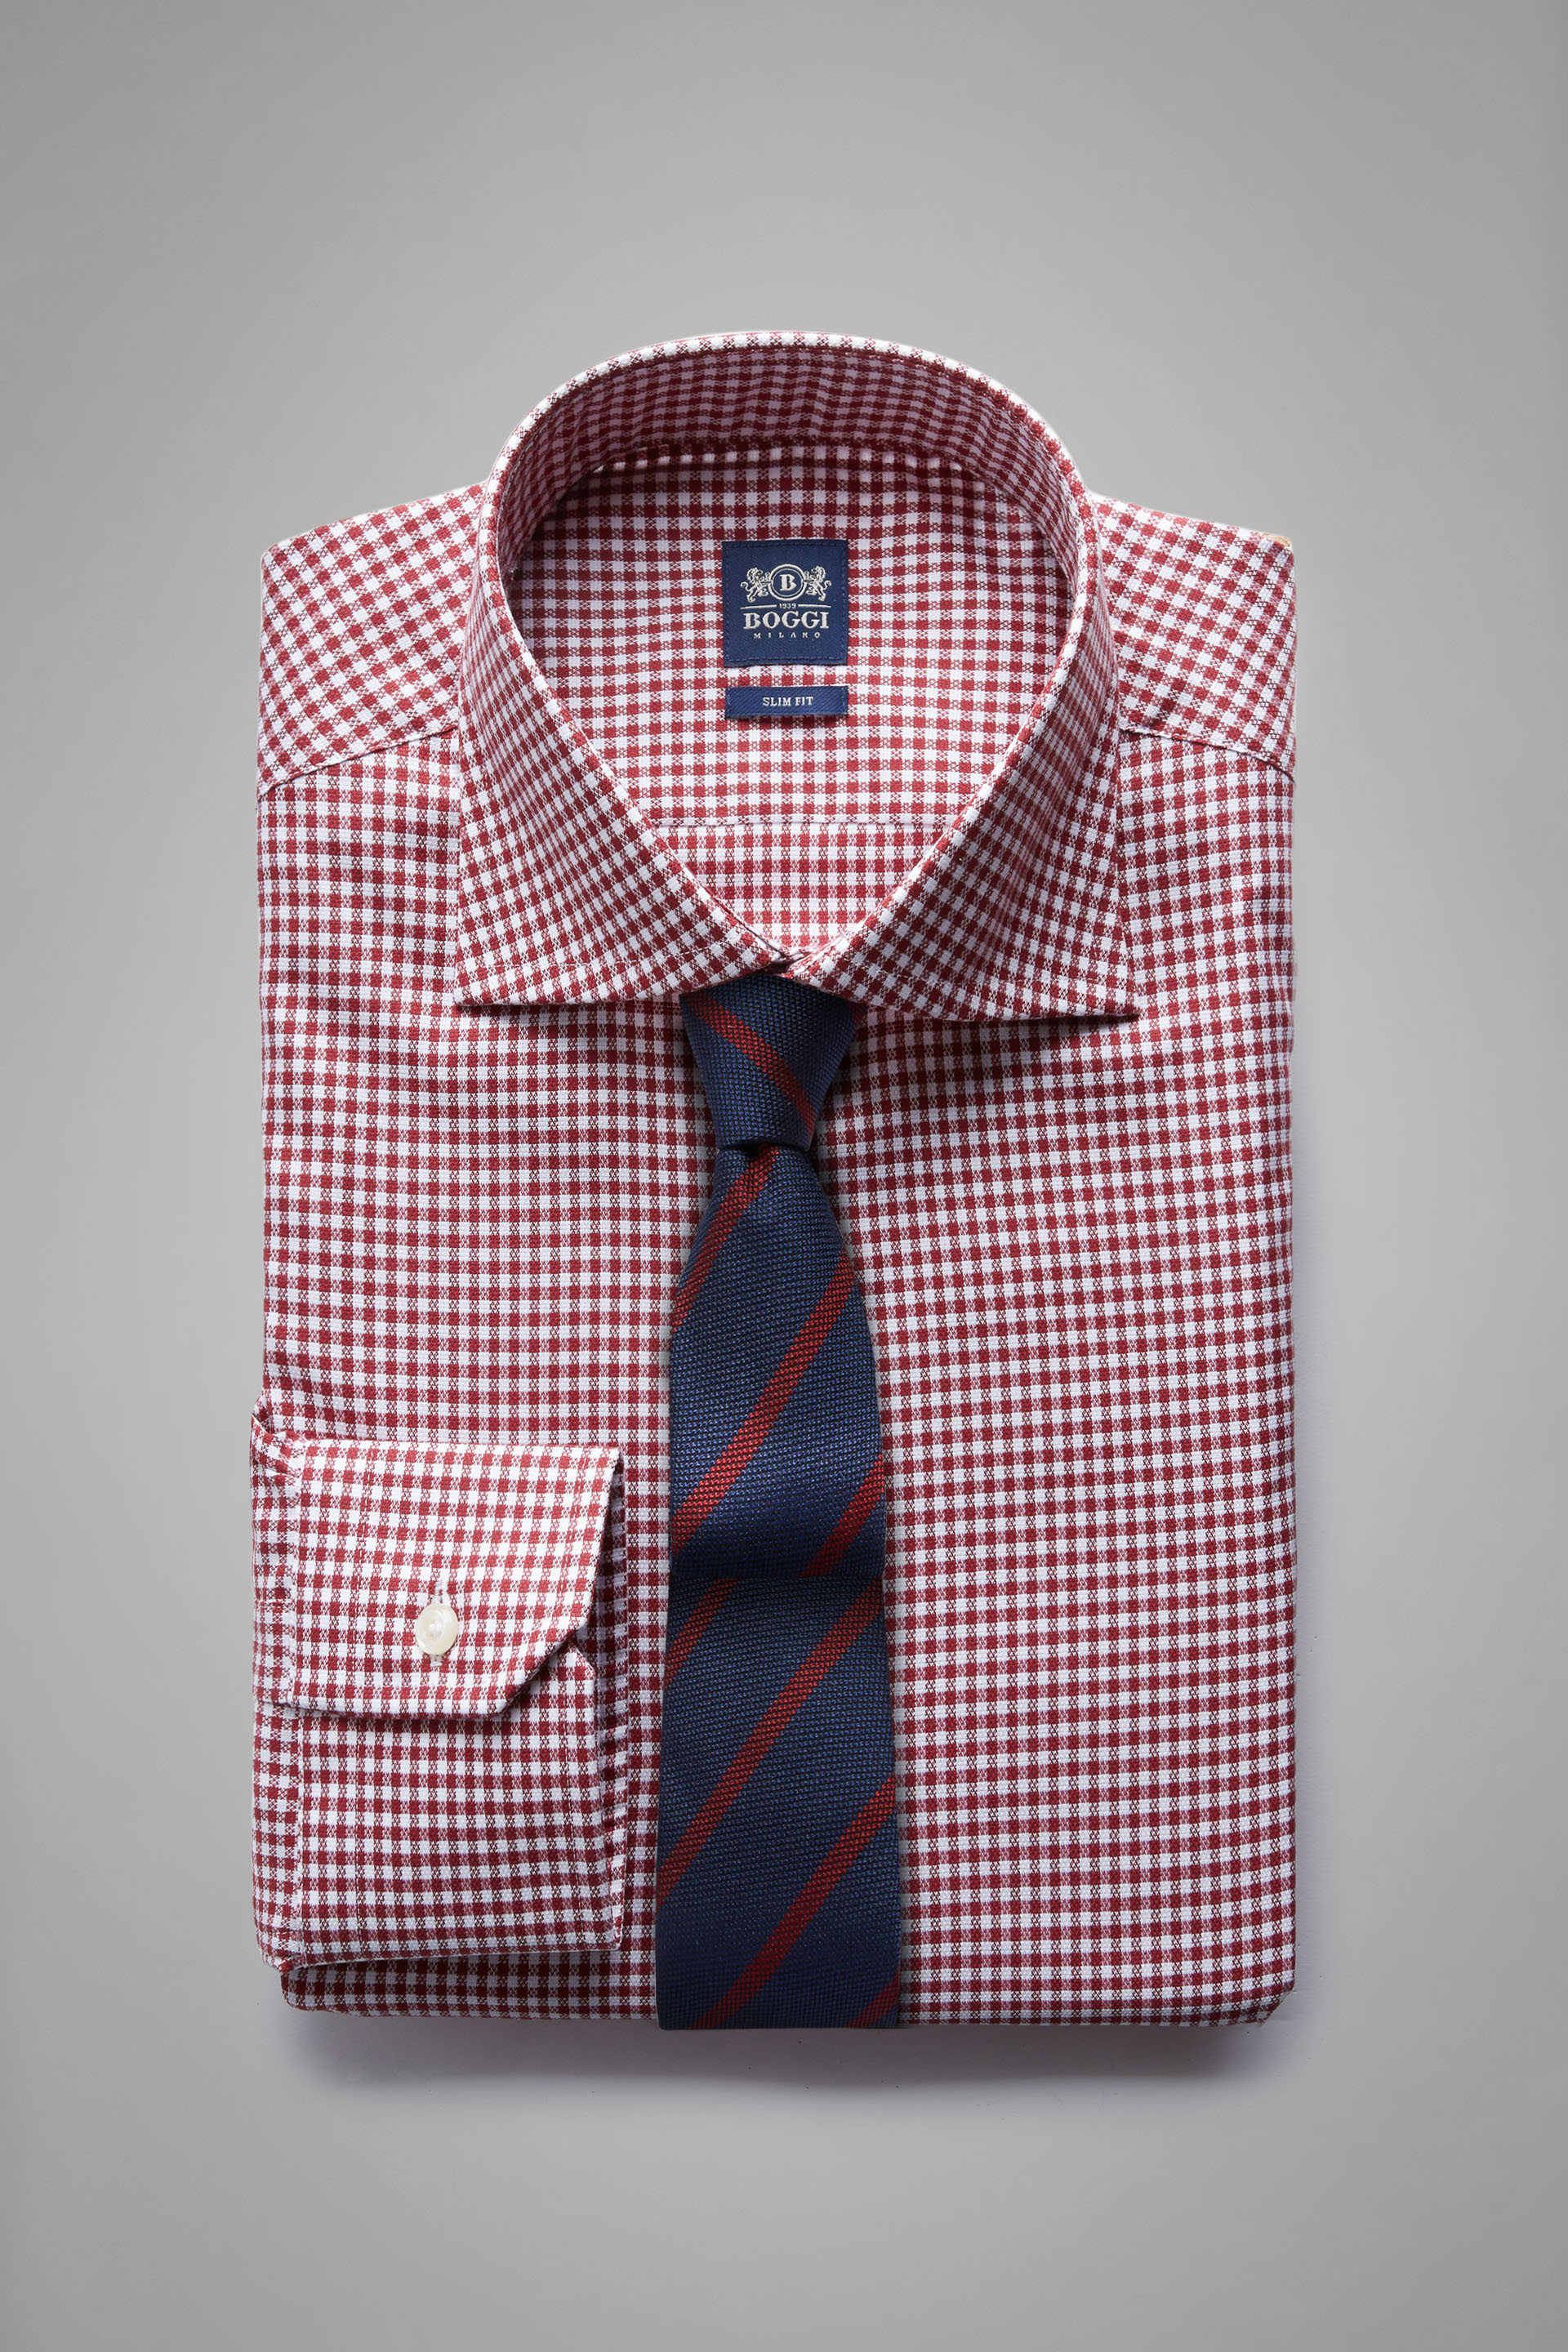 Camisa Boggi Slim Fit A Cuadros Burdeos Con Cuello Windsor